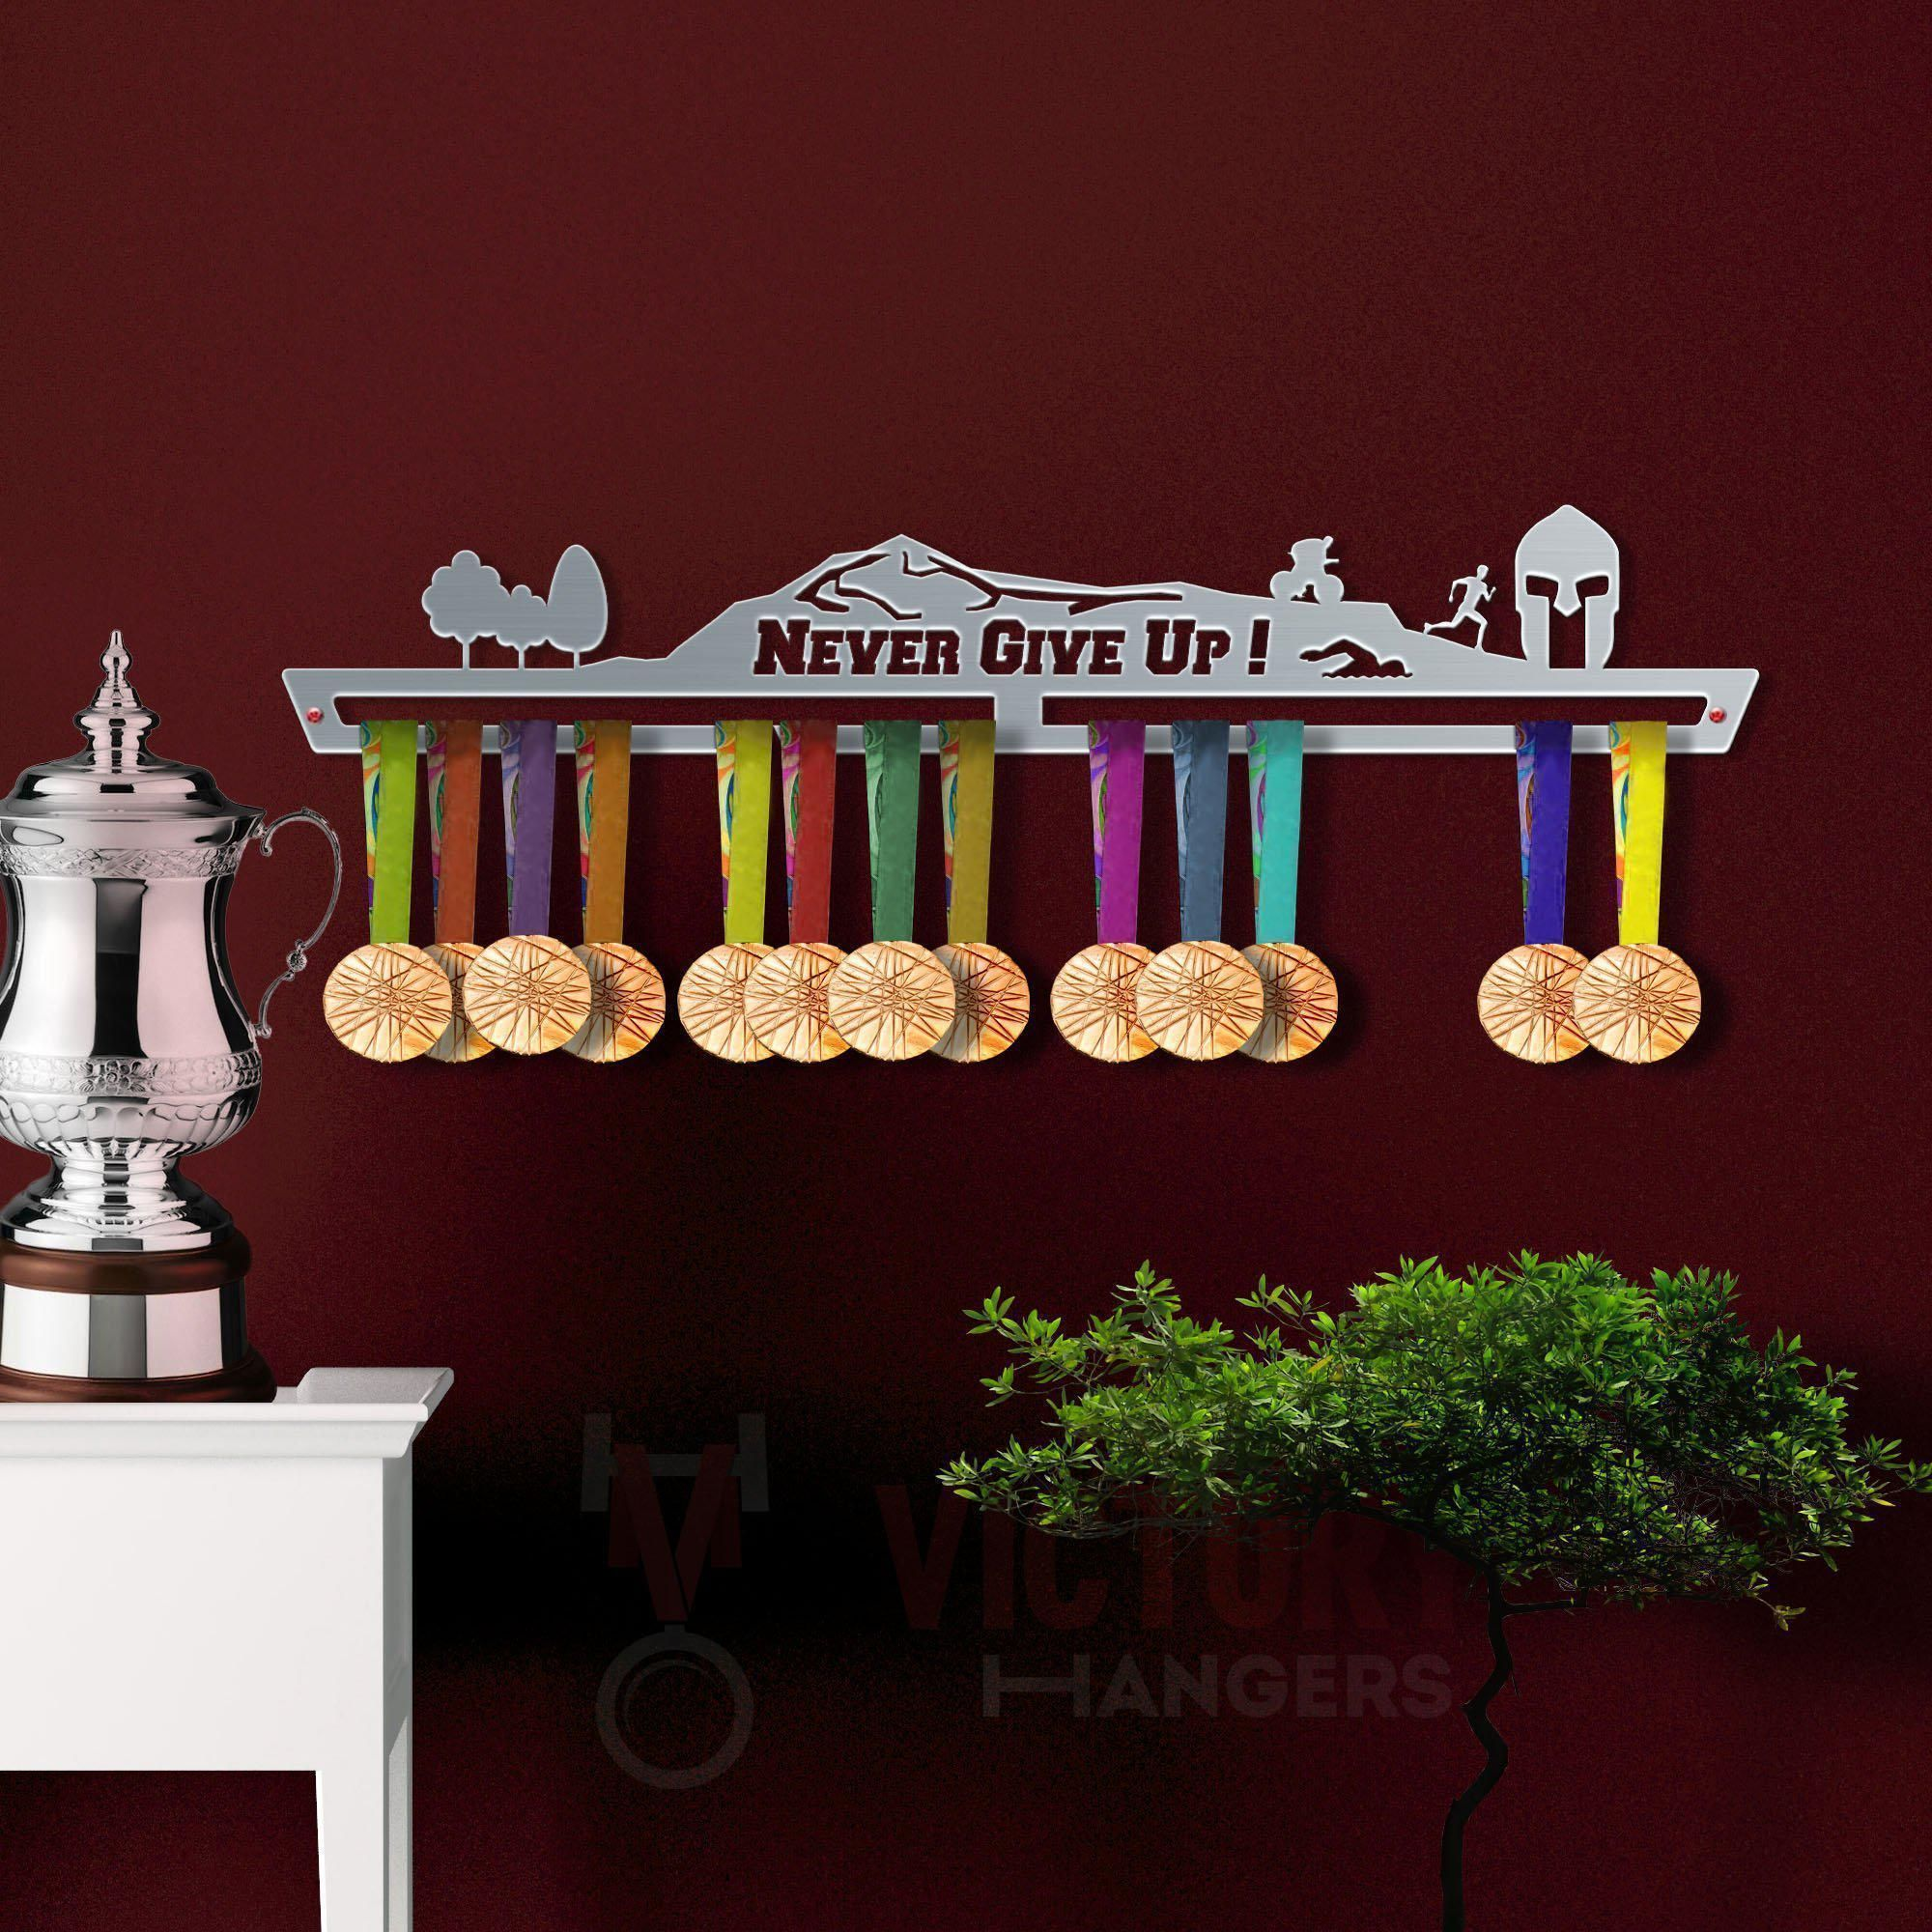 Sports Medal Hangers Handball Medal Hanger Display by VictoryHangers Stainless Steel Medal Display The Best Gift for Champions !